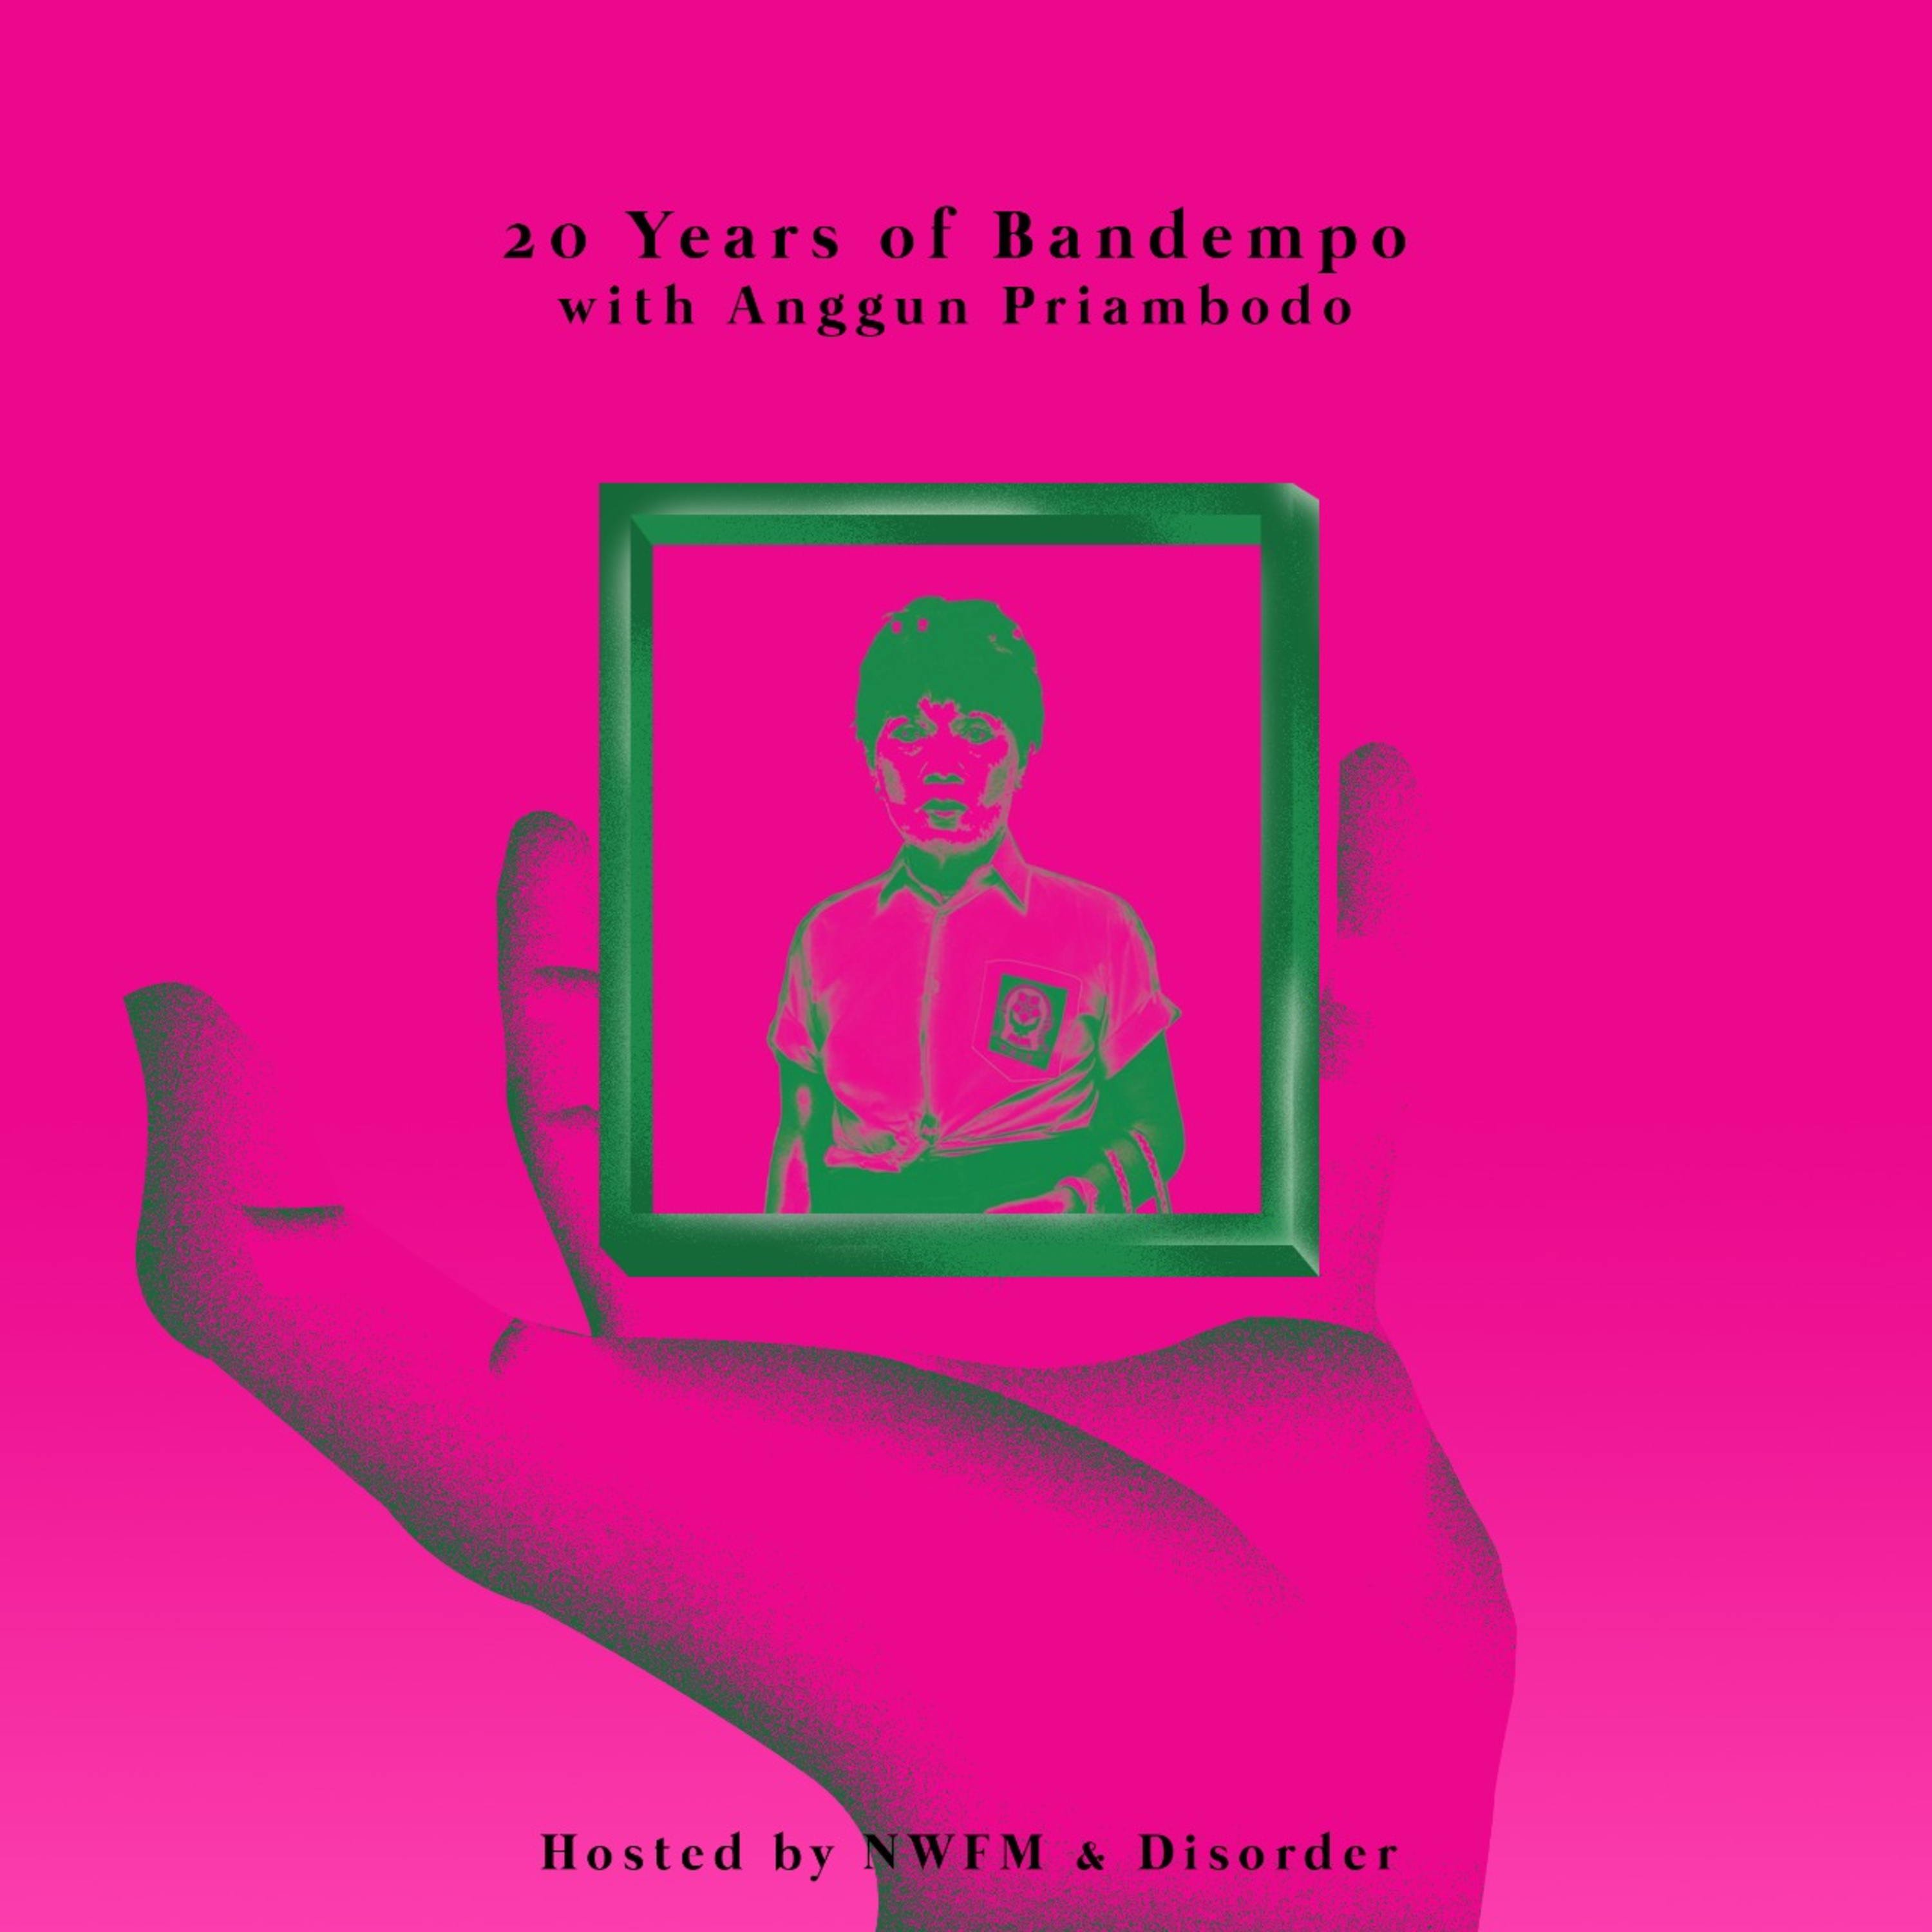 NWFM: 20 Years of Bandempo with Anggun Priambodo